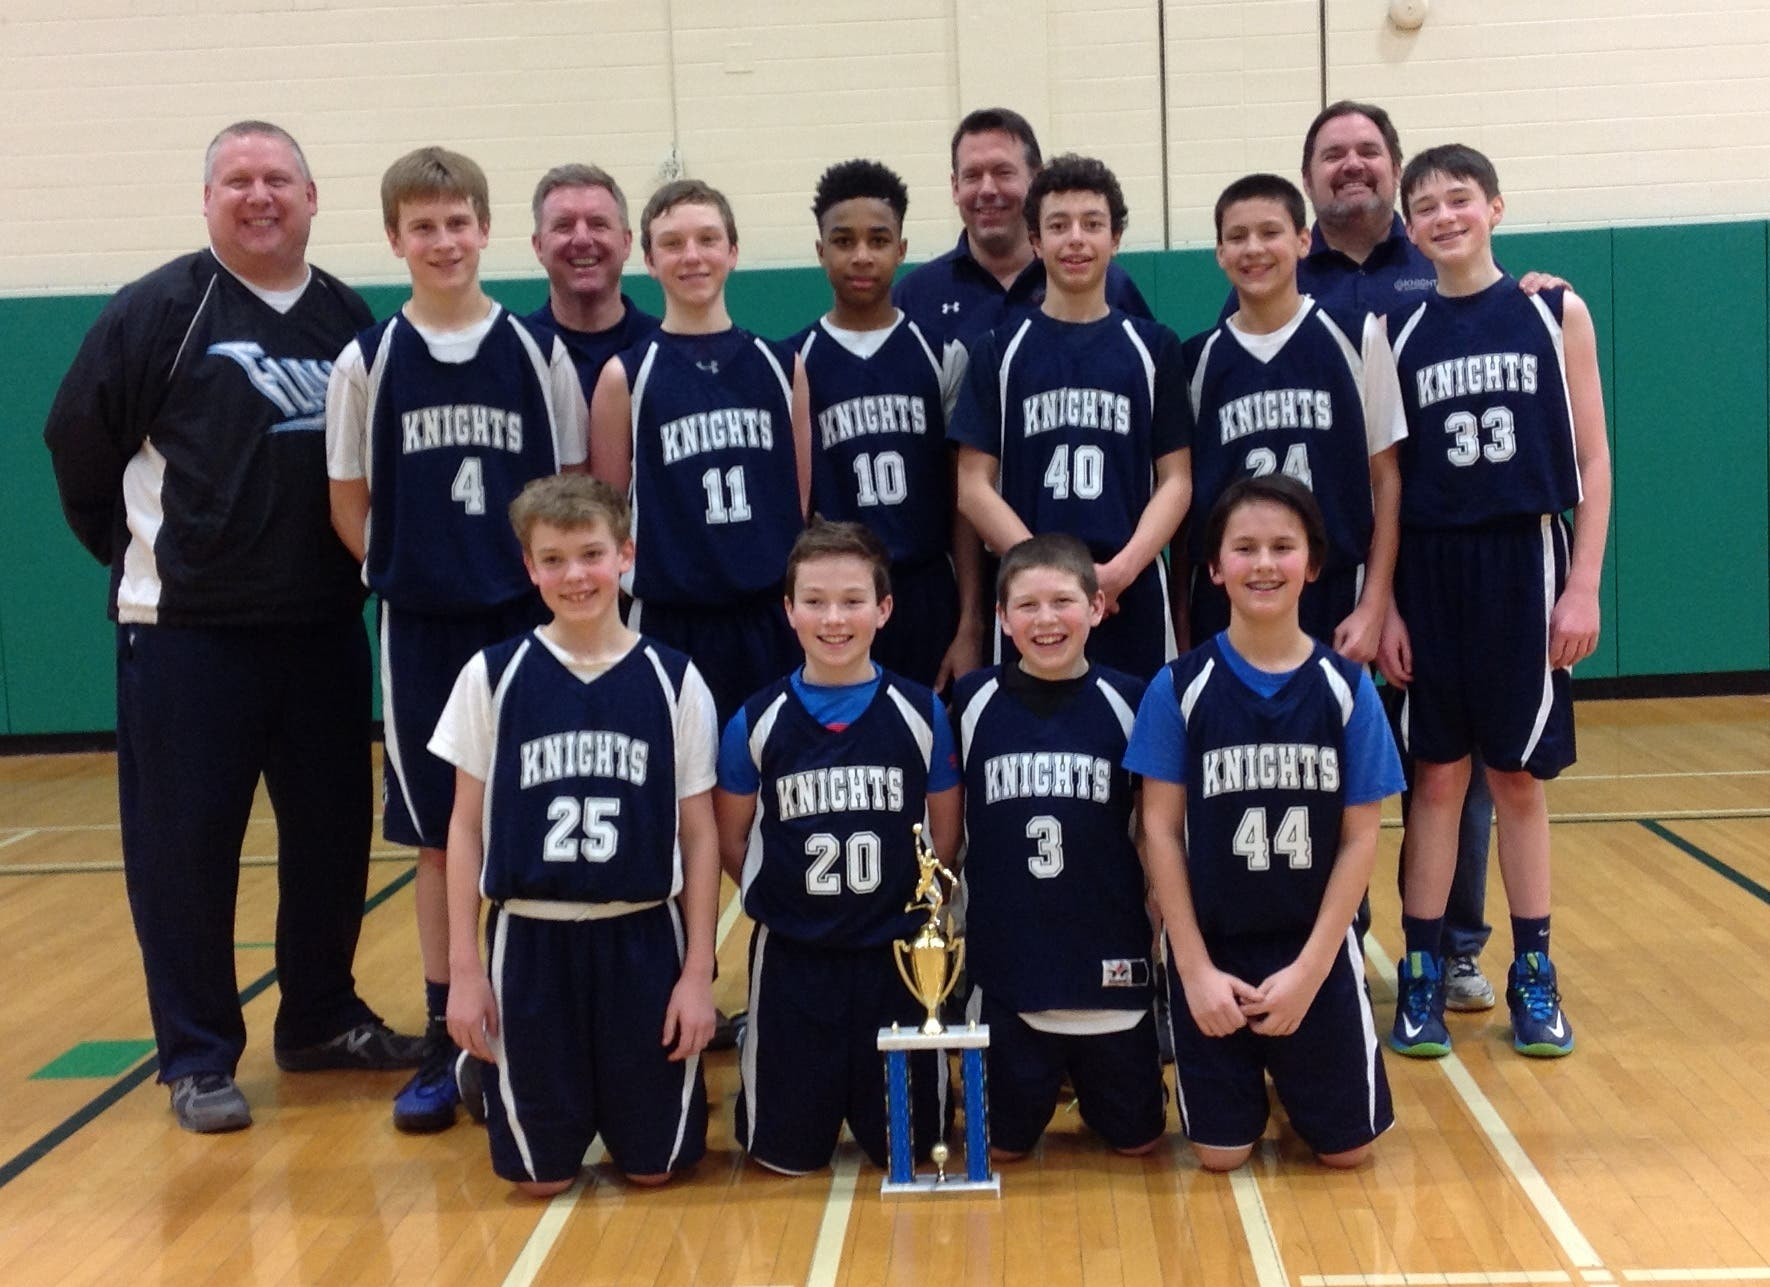 Knights Basketball 7th Grade Dytbl Gold B Playoff